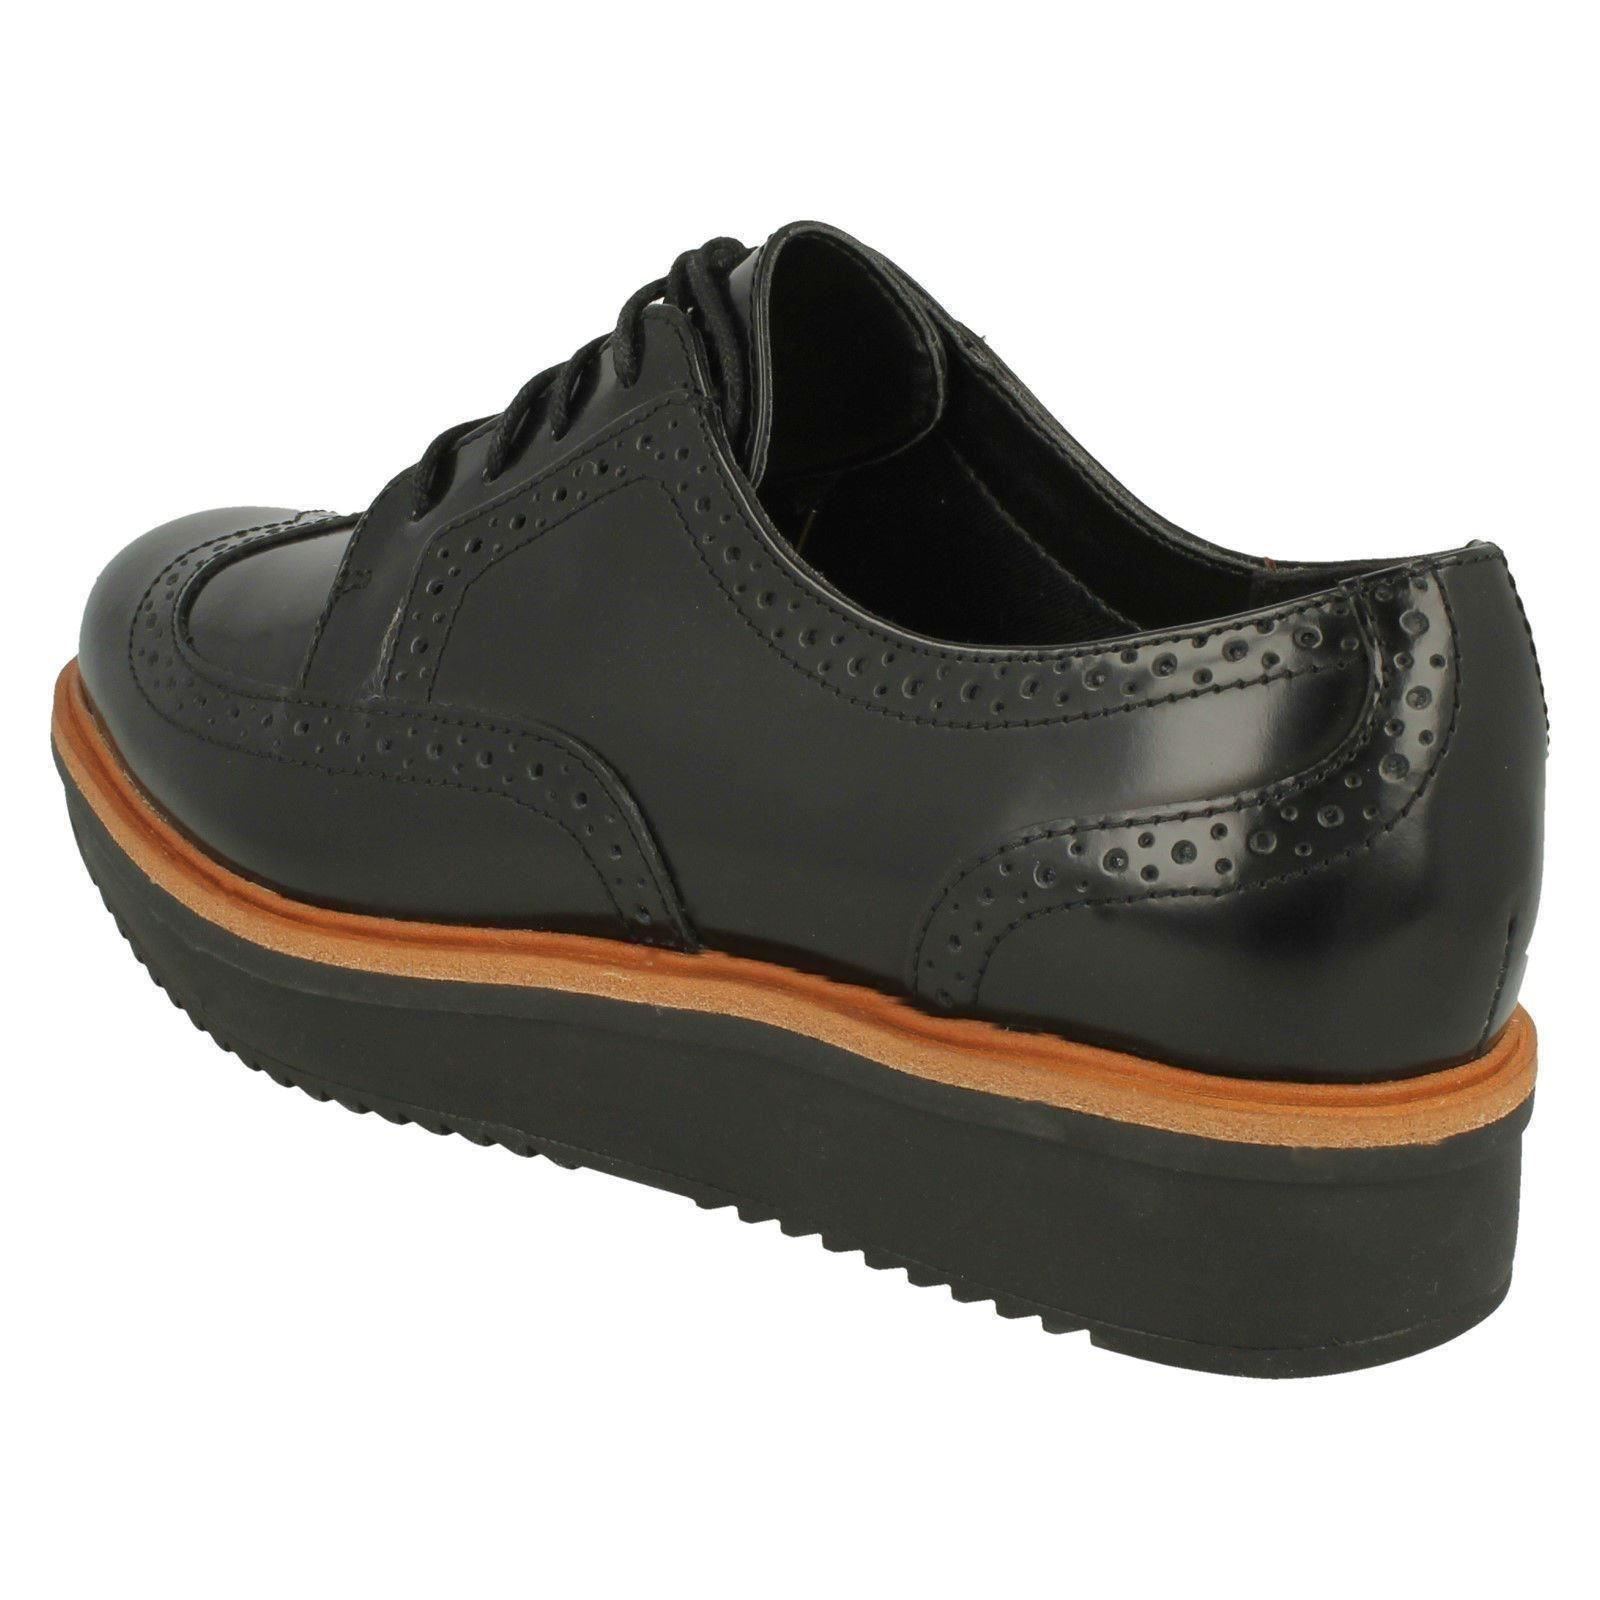 Ladies Clarks Casual Lace-Up Brogue Style shoes shoes shoes Teadale Maira efb933